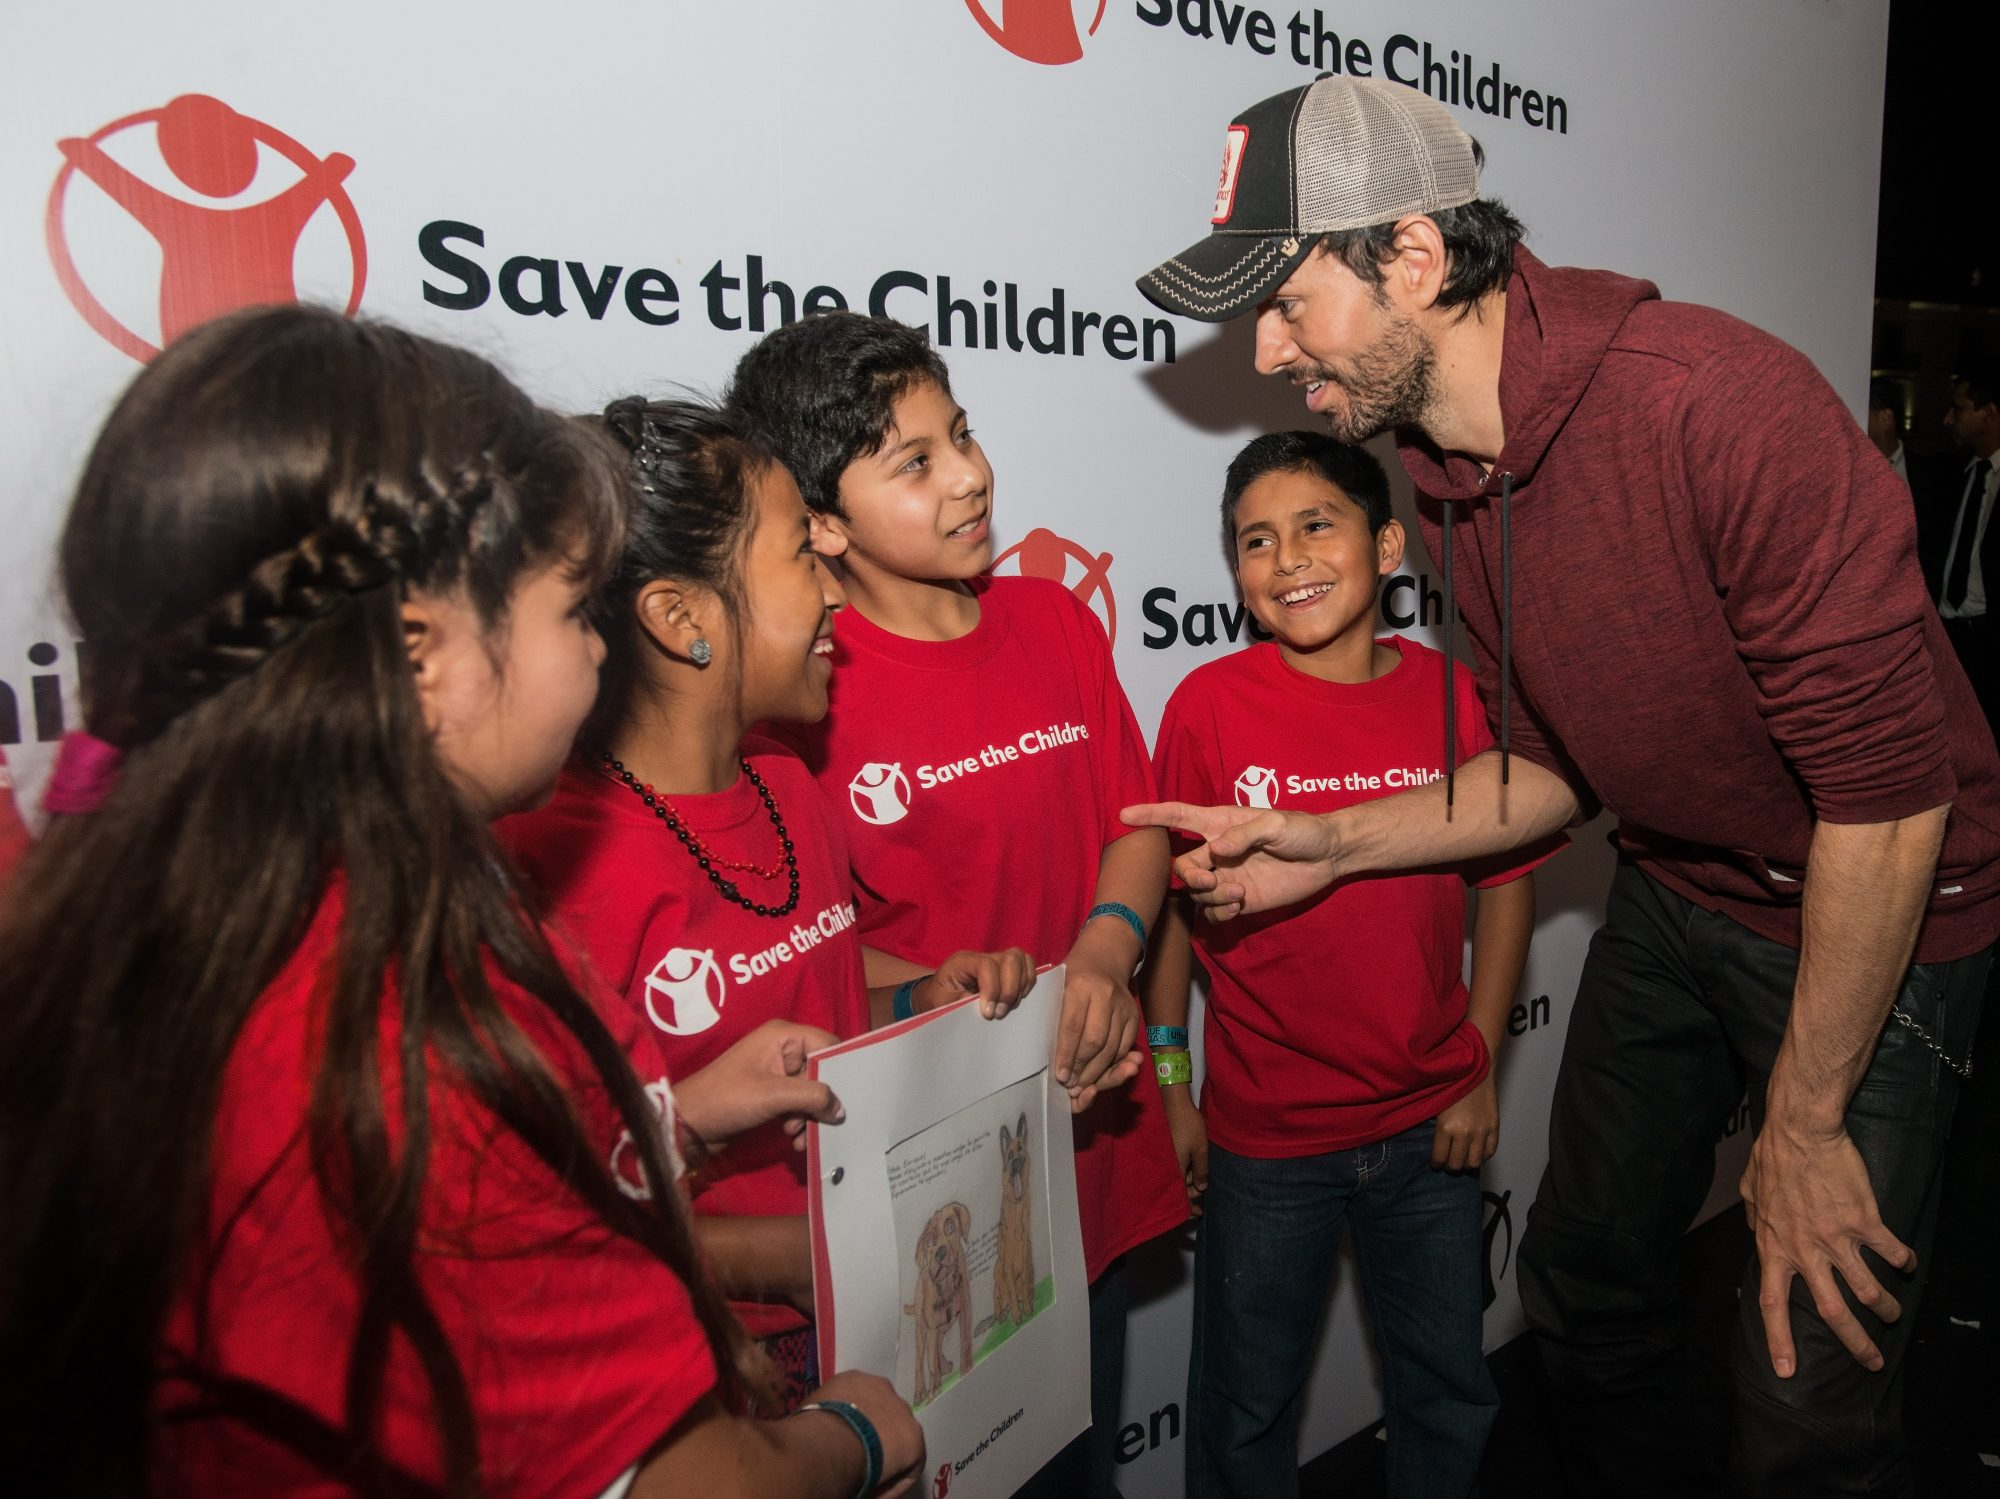 Photos are Embargoed until Tuesday December 13th, 2016. EXCLUSIVE PHOTO FOR PEOPLE: International pop star Enrique Iglesias talks with, from left, Henely, Juana, Gerson and Julio, before his Dec. 9, 2016, concert in Guatemala City, Guatemala. The kids, who all participate in Save the Children's Literacy Boost program in Guatemala, created a handmade book as a thank you gift for Iglesias, who, through a partnership with Microsoft, has donated $200,000 in software to Save the Children to strengthen its literacy programming for elementary school-age children in El Salvador, Guatemala and Peru.